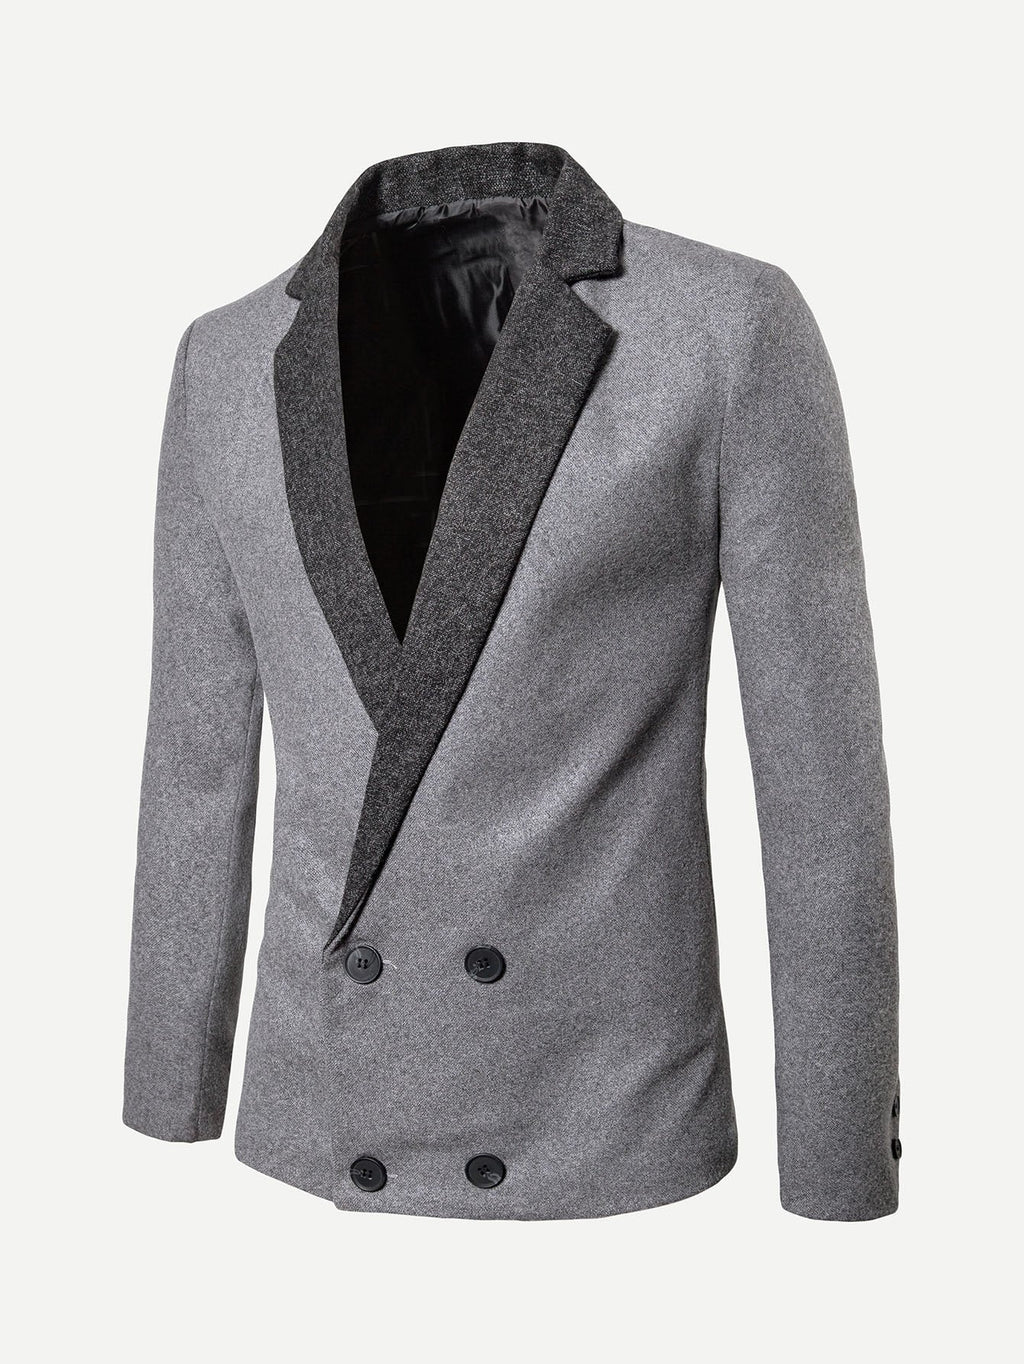 Men's Blazers - Double Breasted Blazer